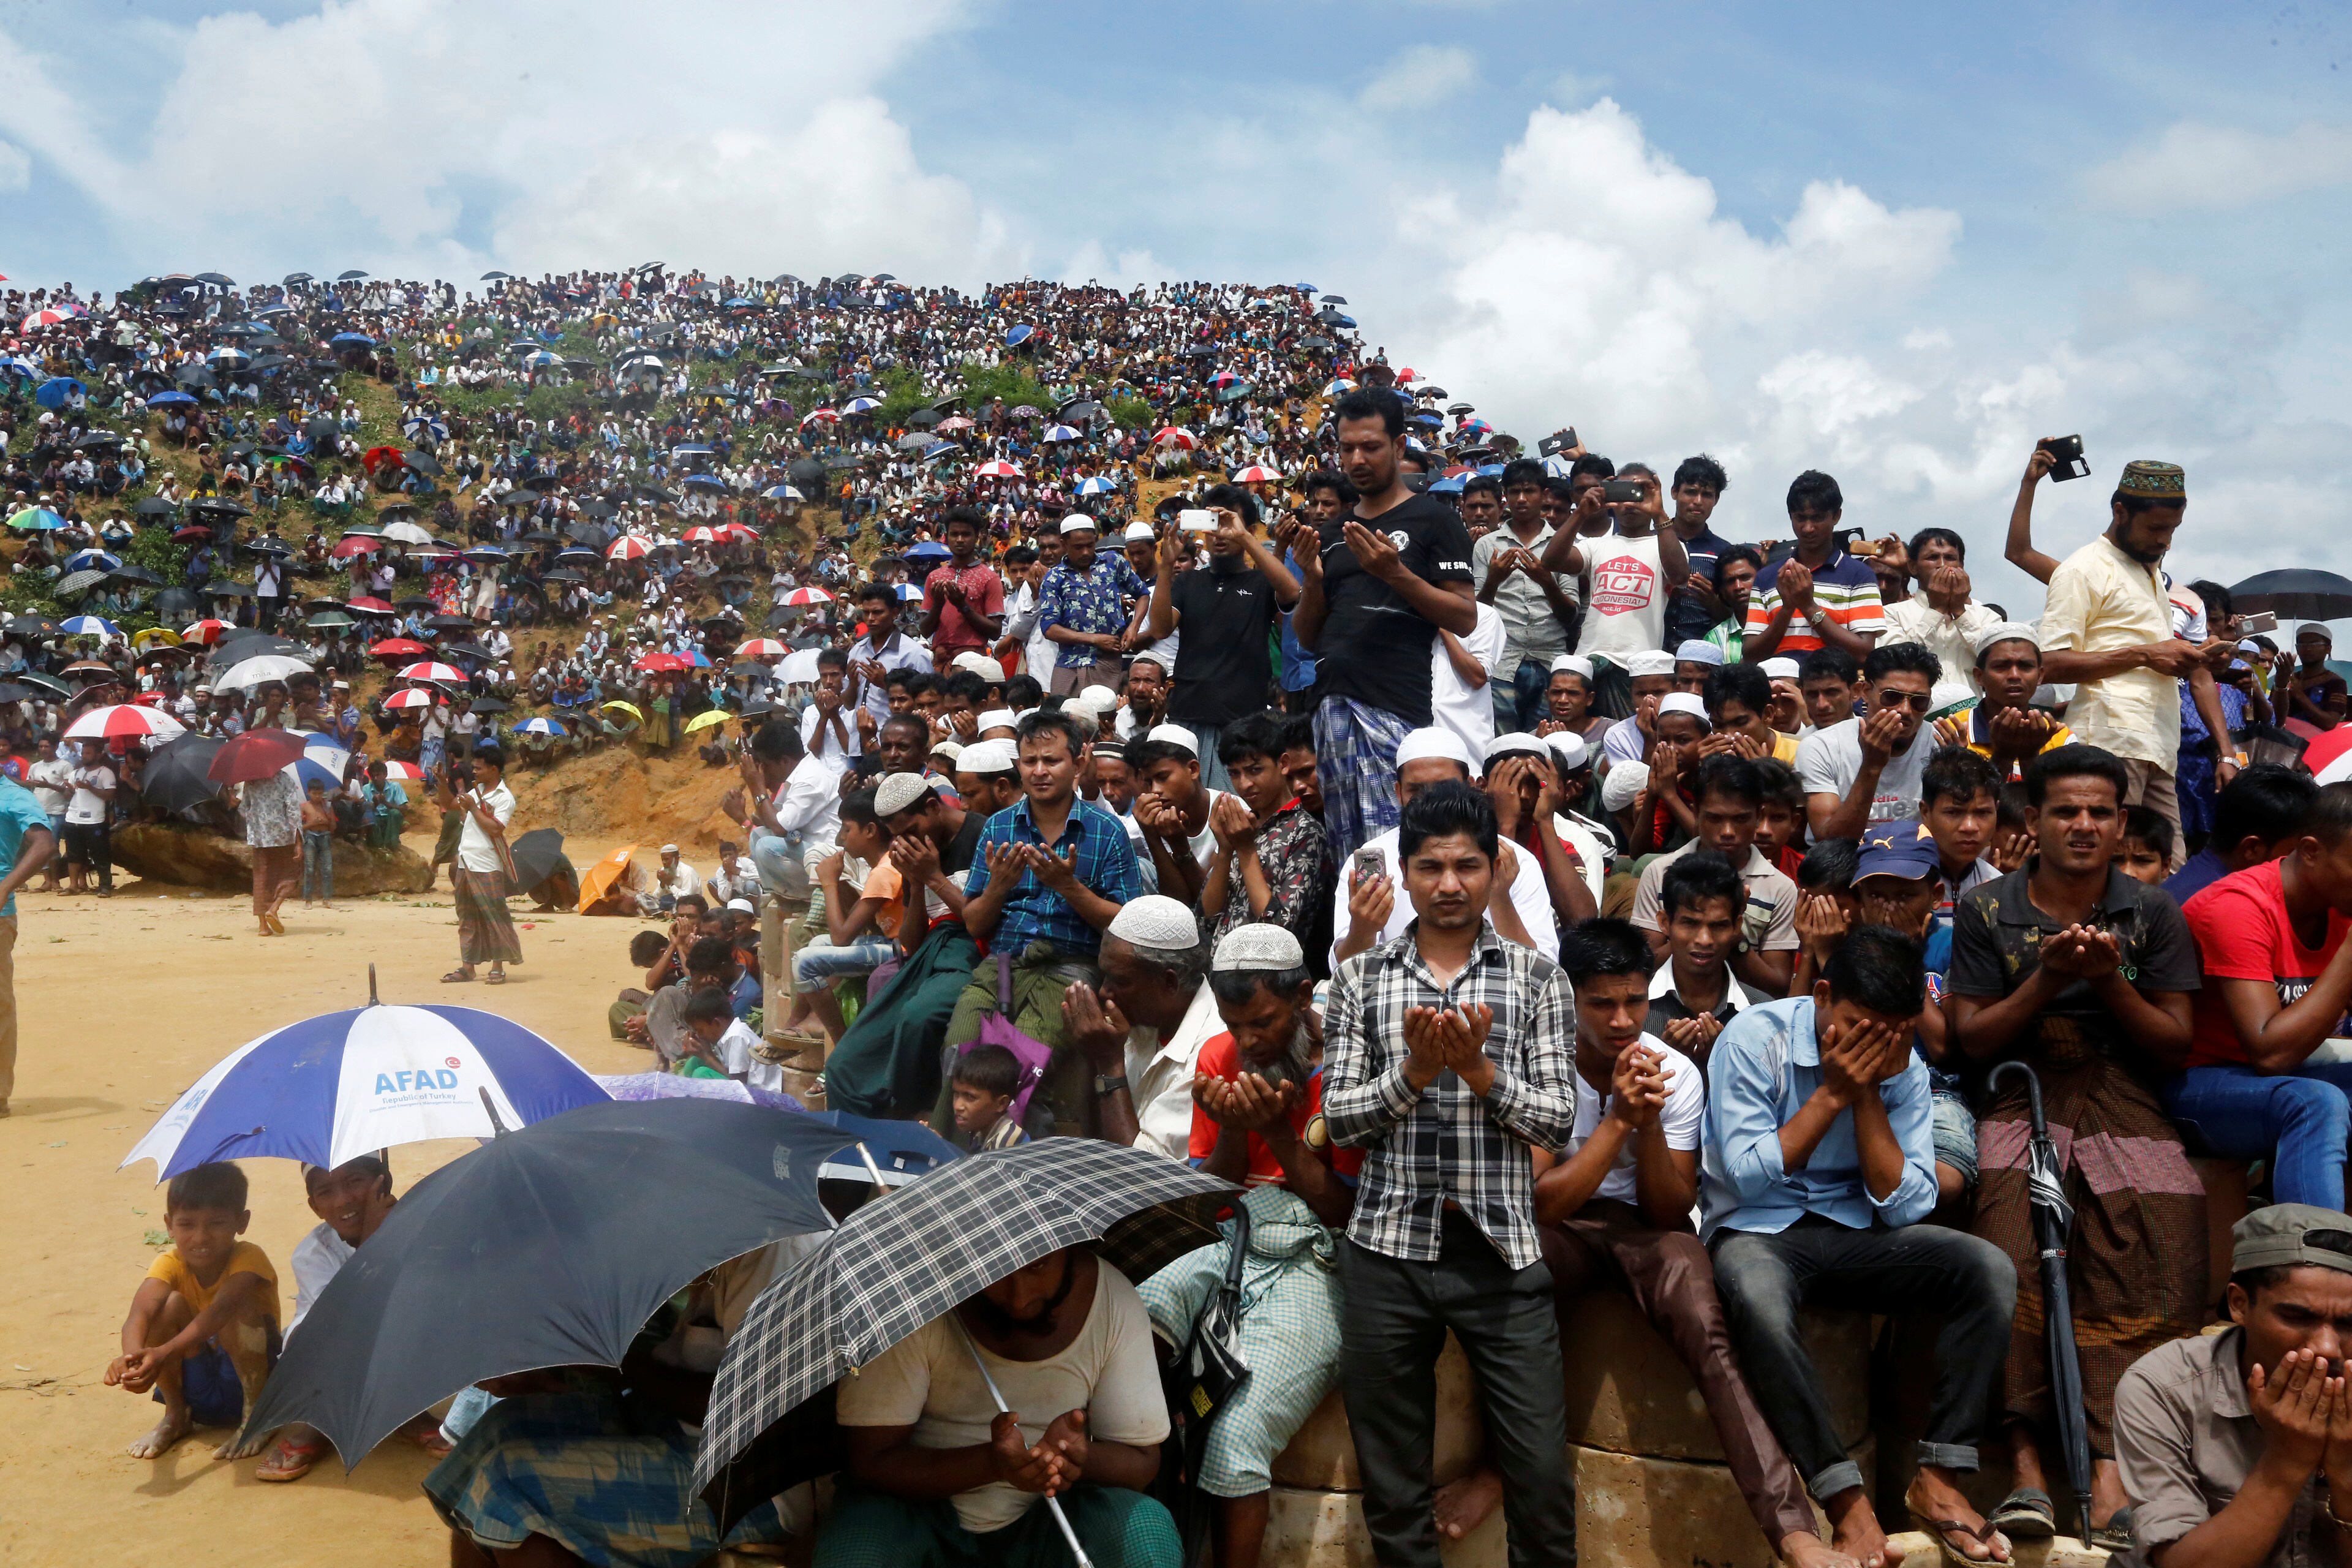 Rohingya refugees take part in a prayer as they gather to mark the second anniversary of the exodus at the Kutupalong camp in Cox's Bazar, Bangladesh, August 25, 2019. REUTERS/Rafiqur Rahman